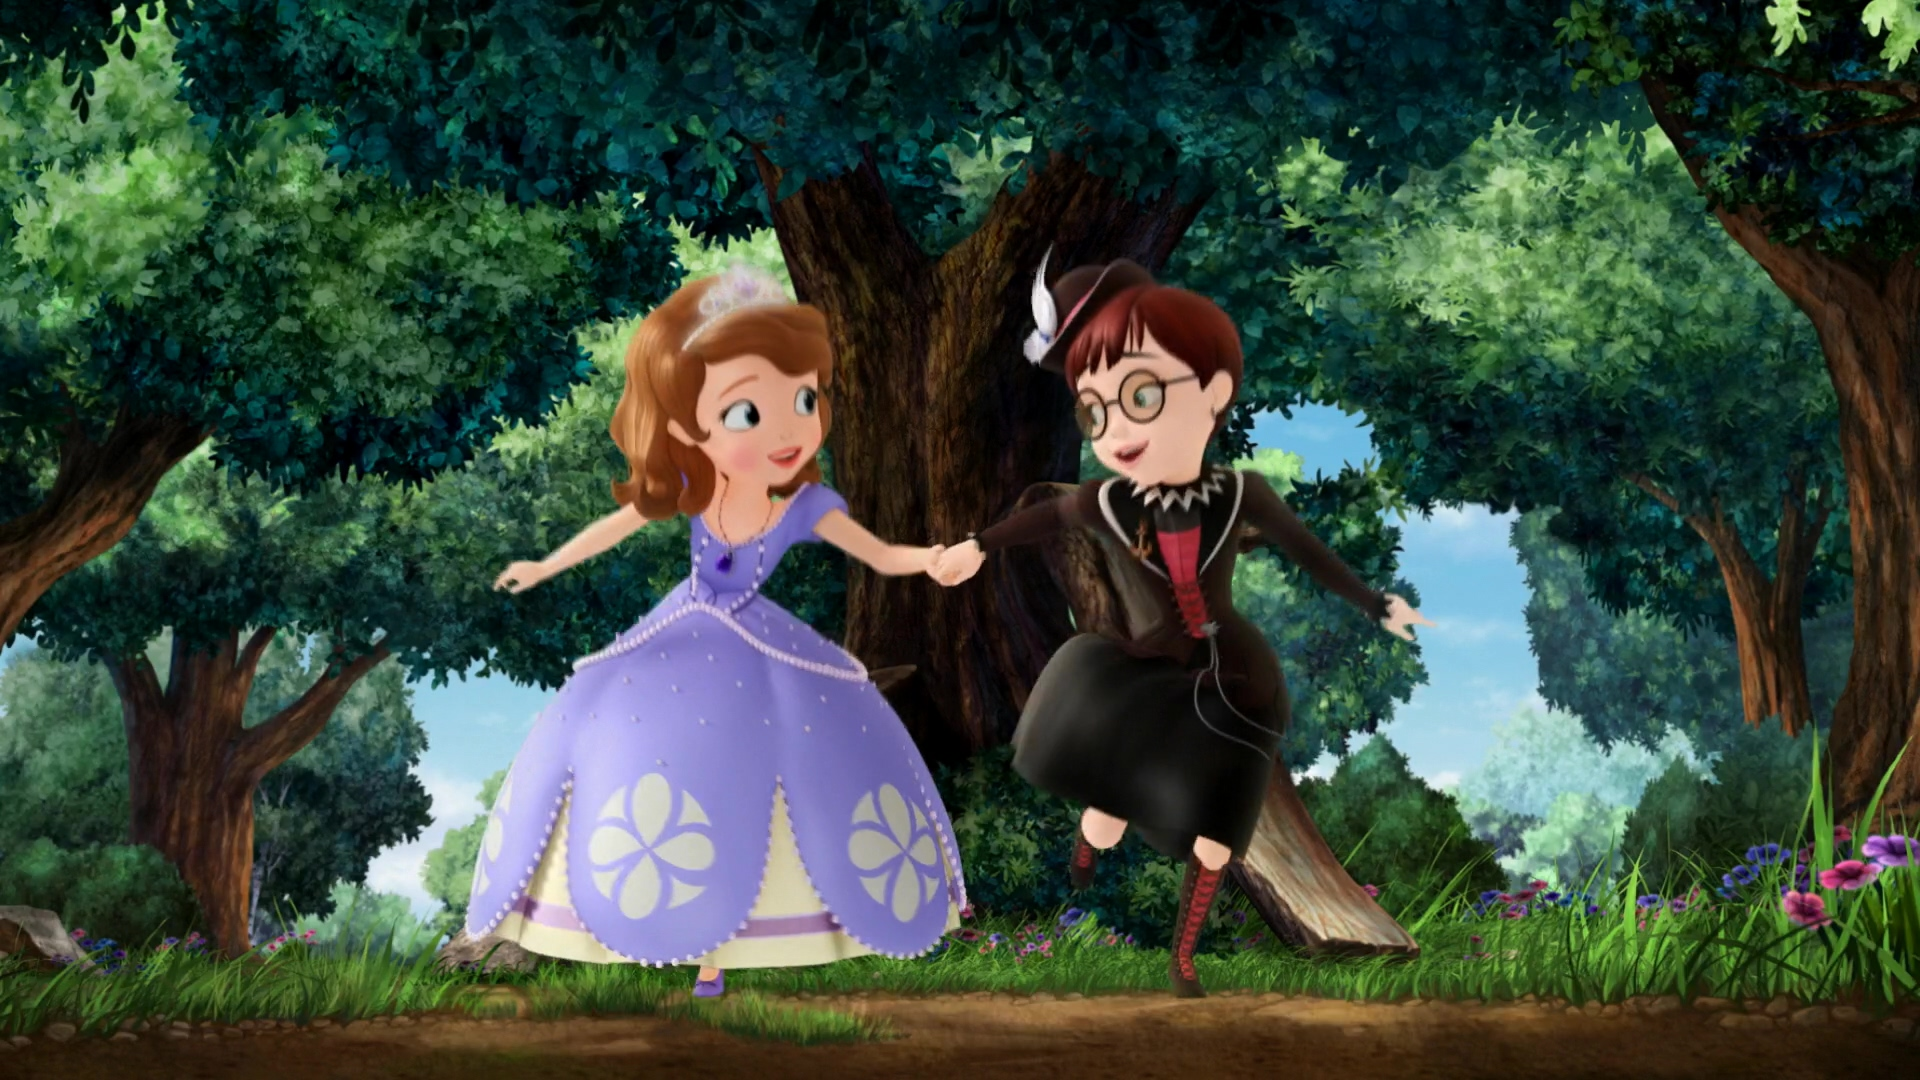 Image Sofia The First When It Comes To Making Friends